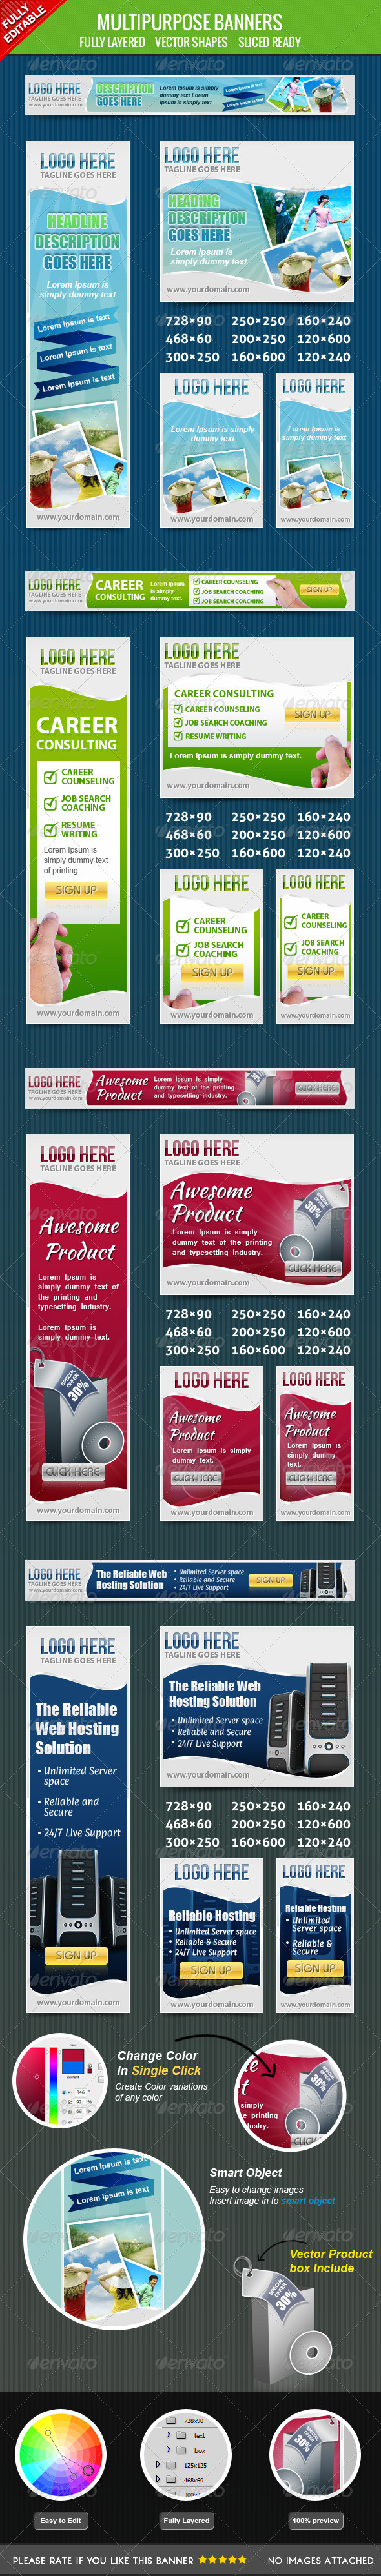 Multiporpose Banners  - Banners & Ads Web Elements